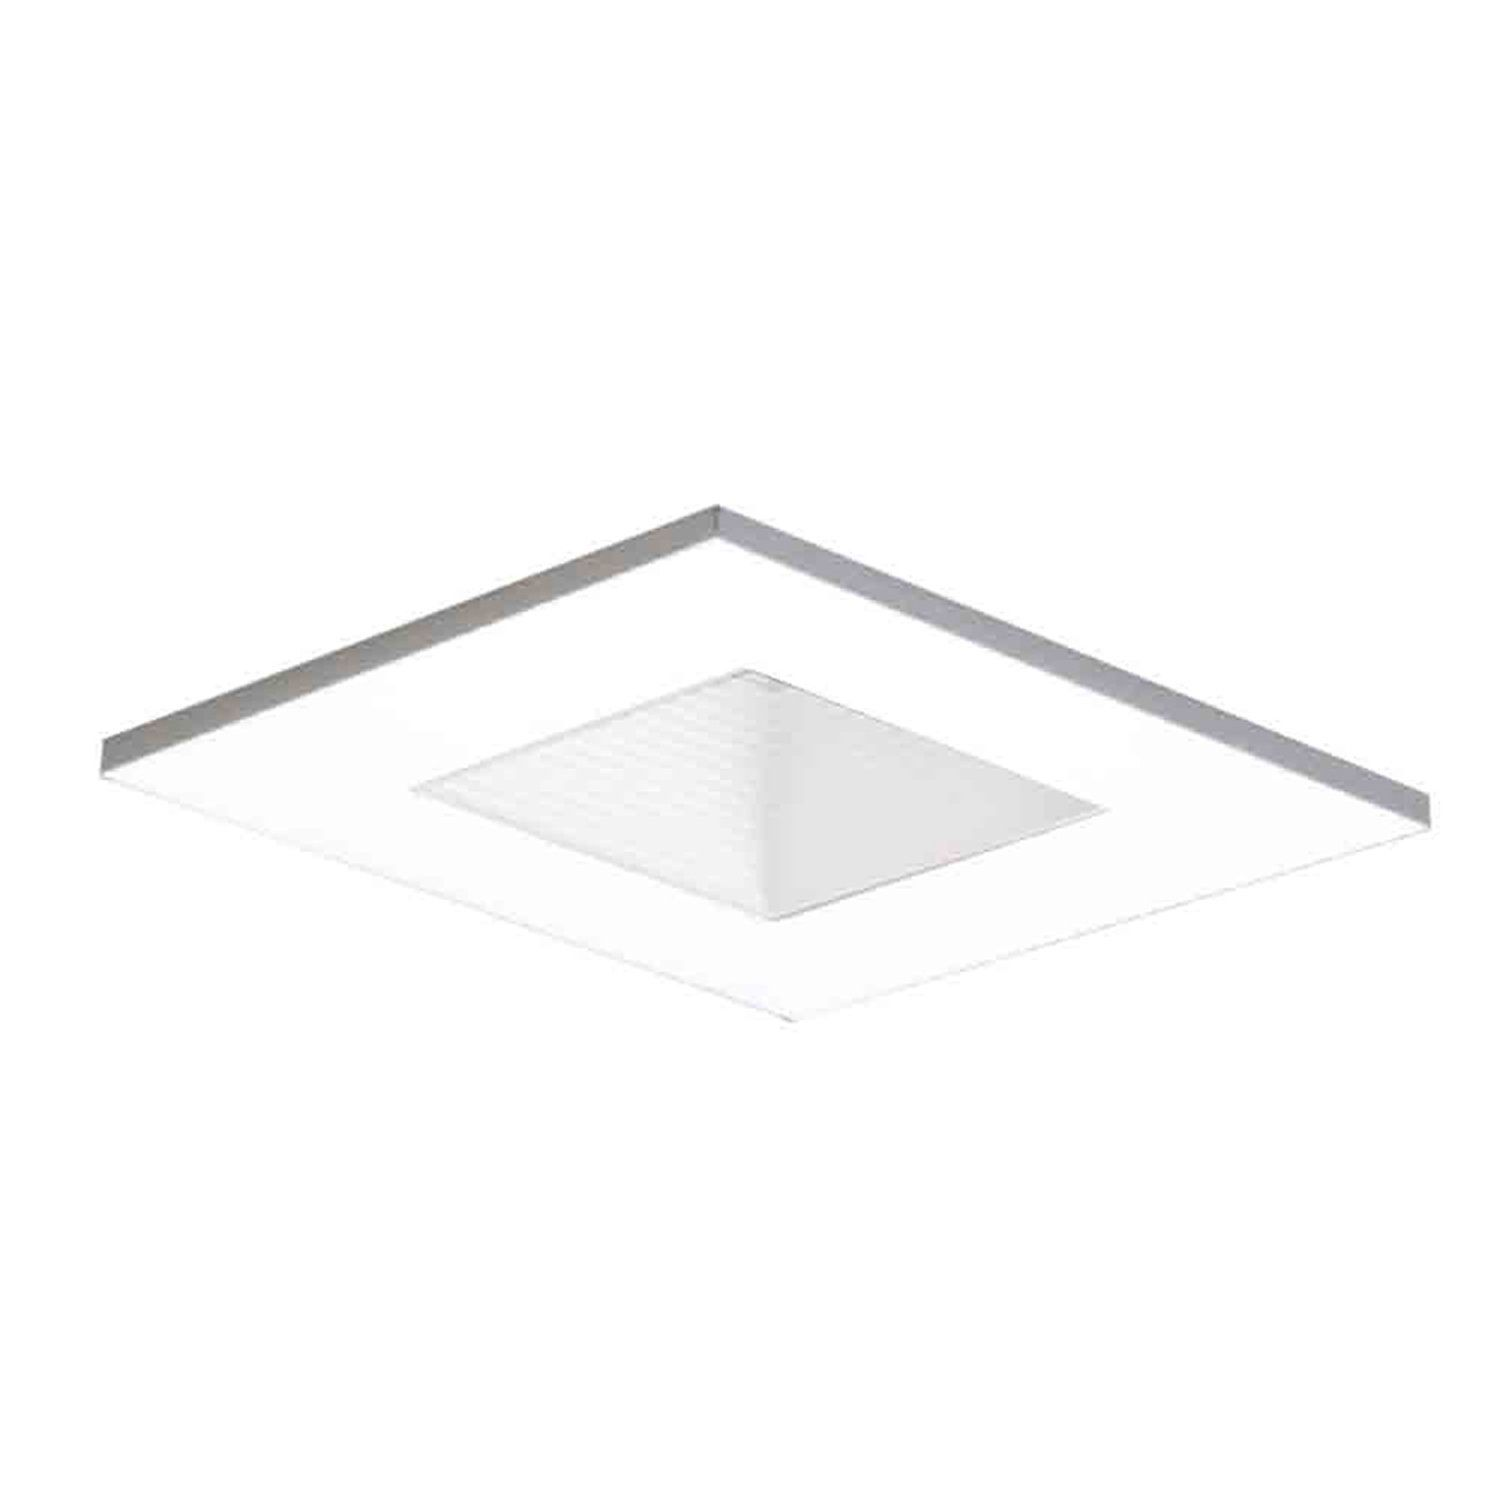 Halo recessed 3012whwb 3 inch 15 degree trim lensed square shower halo 3 in white recessed ceiling light square shower trim with regressed lens wet rated shower the home depot arubaitofo Gallery